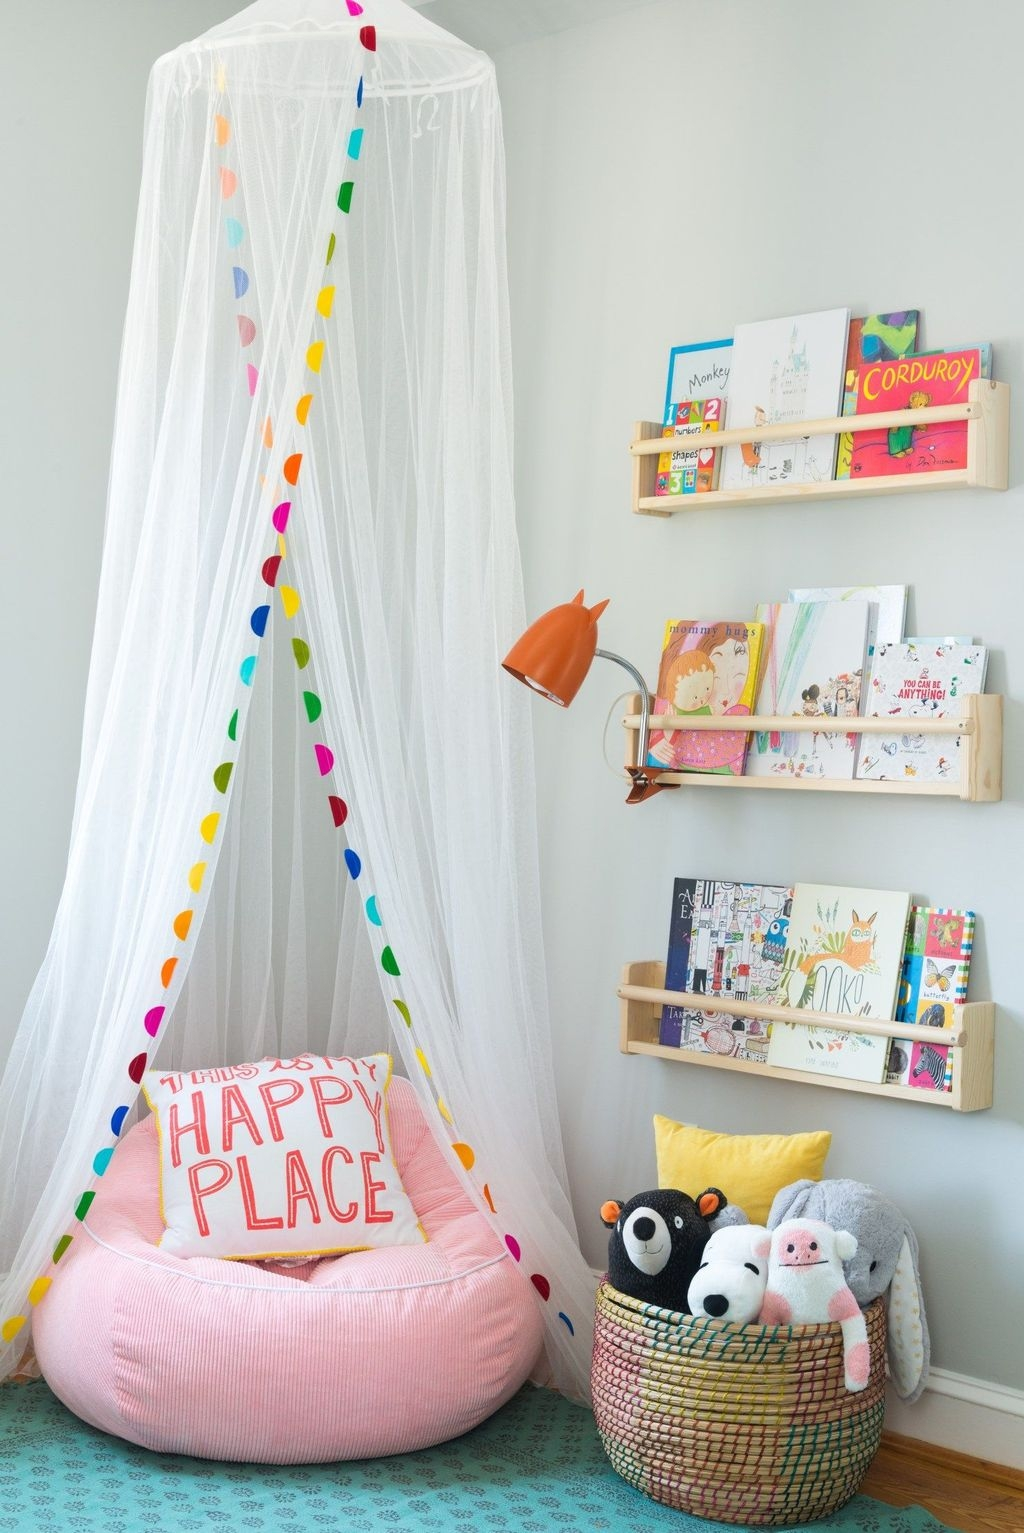 Inspiring Kids Room Design Ideas 28